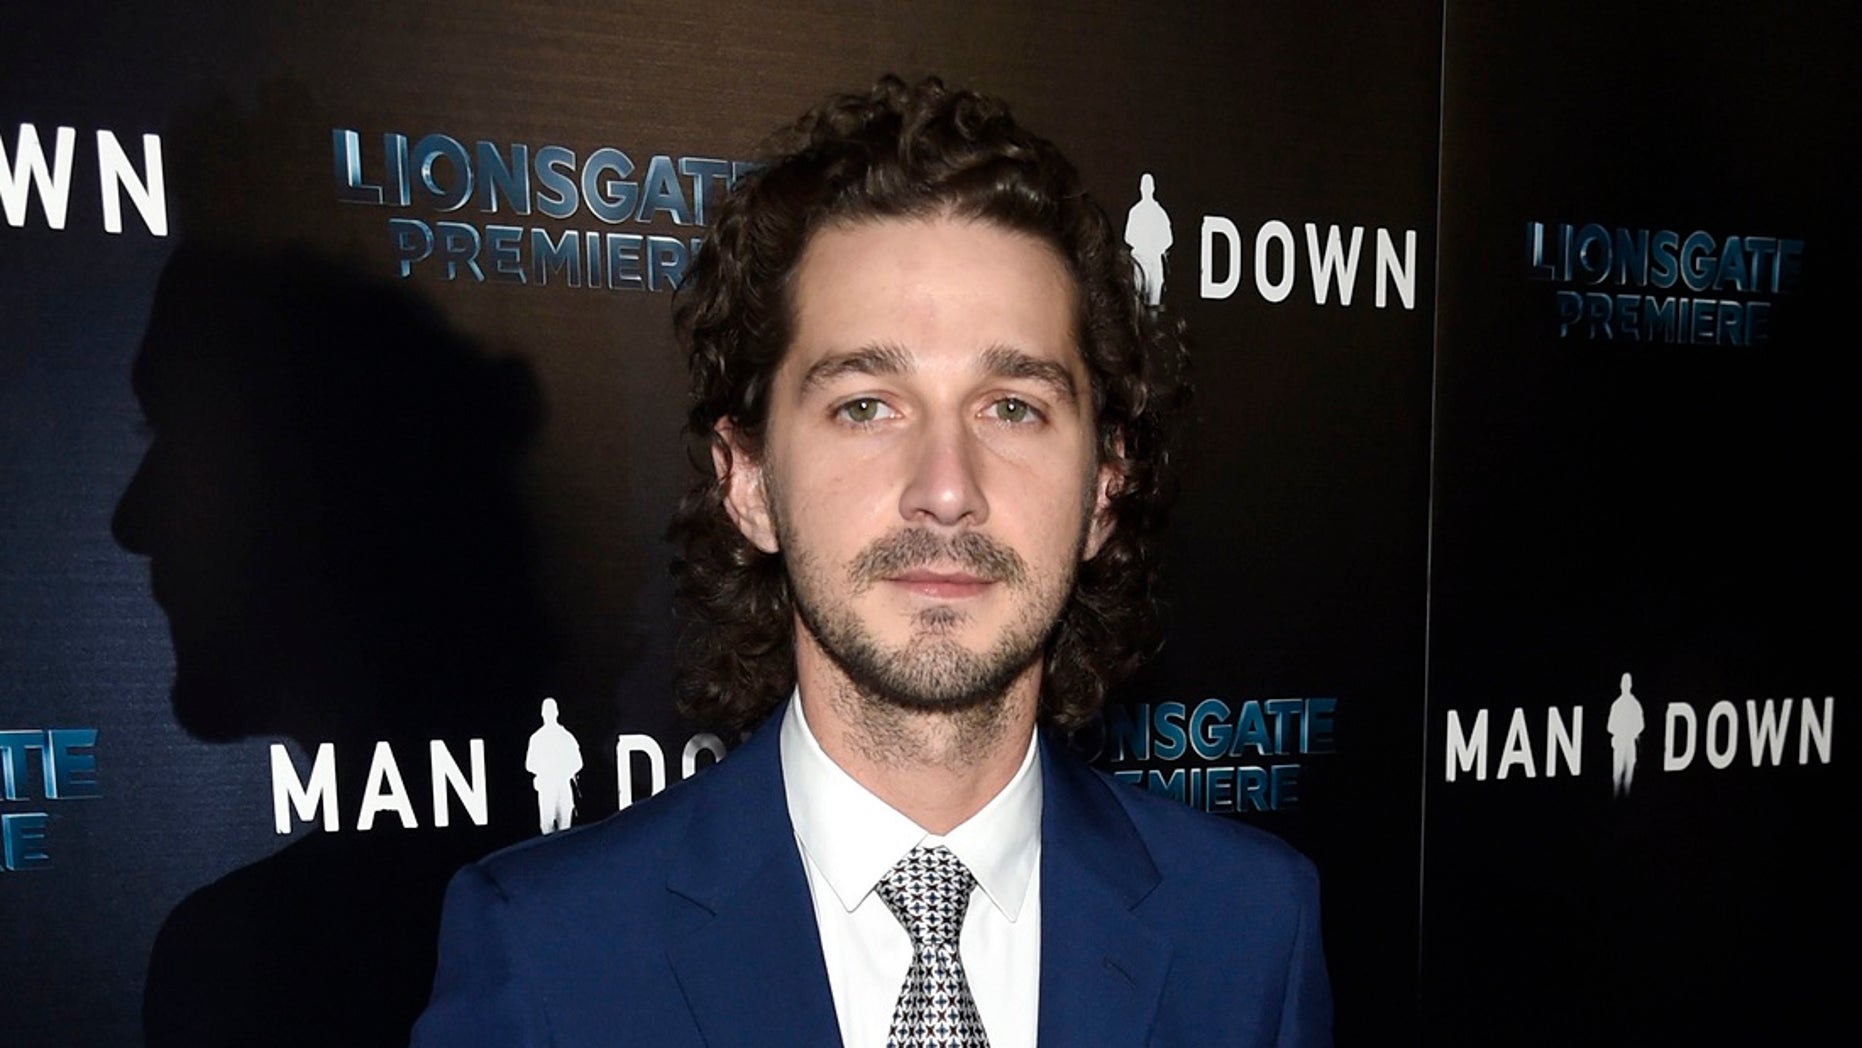 Shia LaBeouf has faced a number of legal issues and controversies.